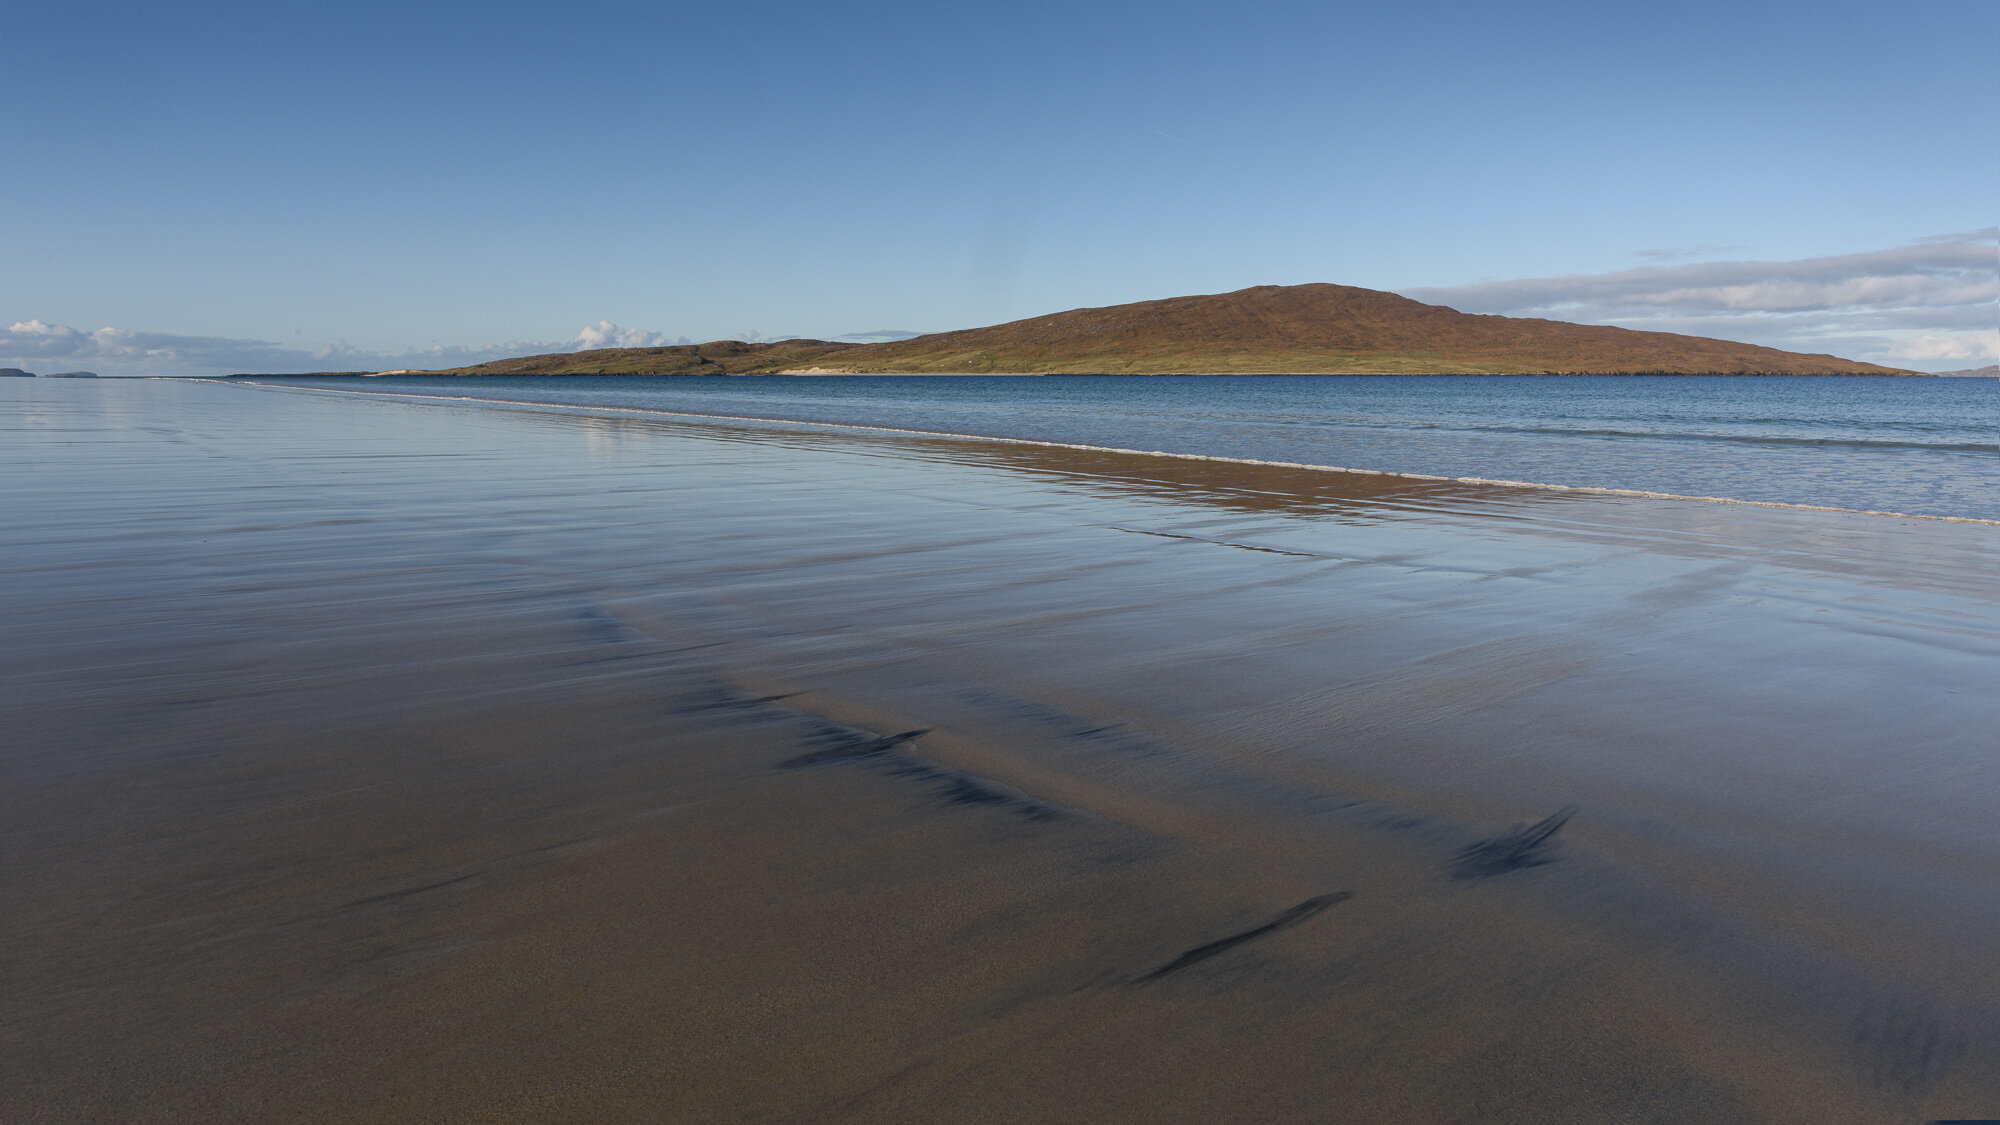 Receding tide, mid-morning - miles of golden sand, with no-one there!